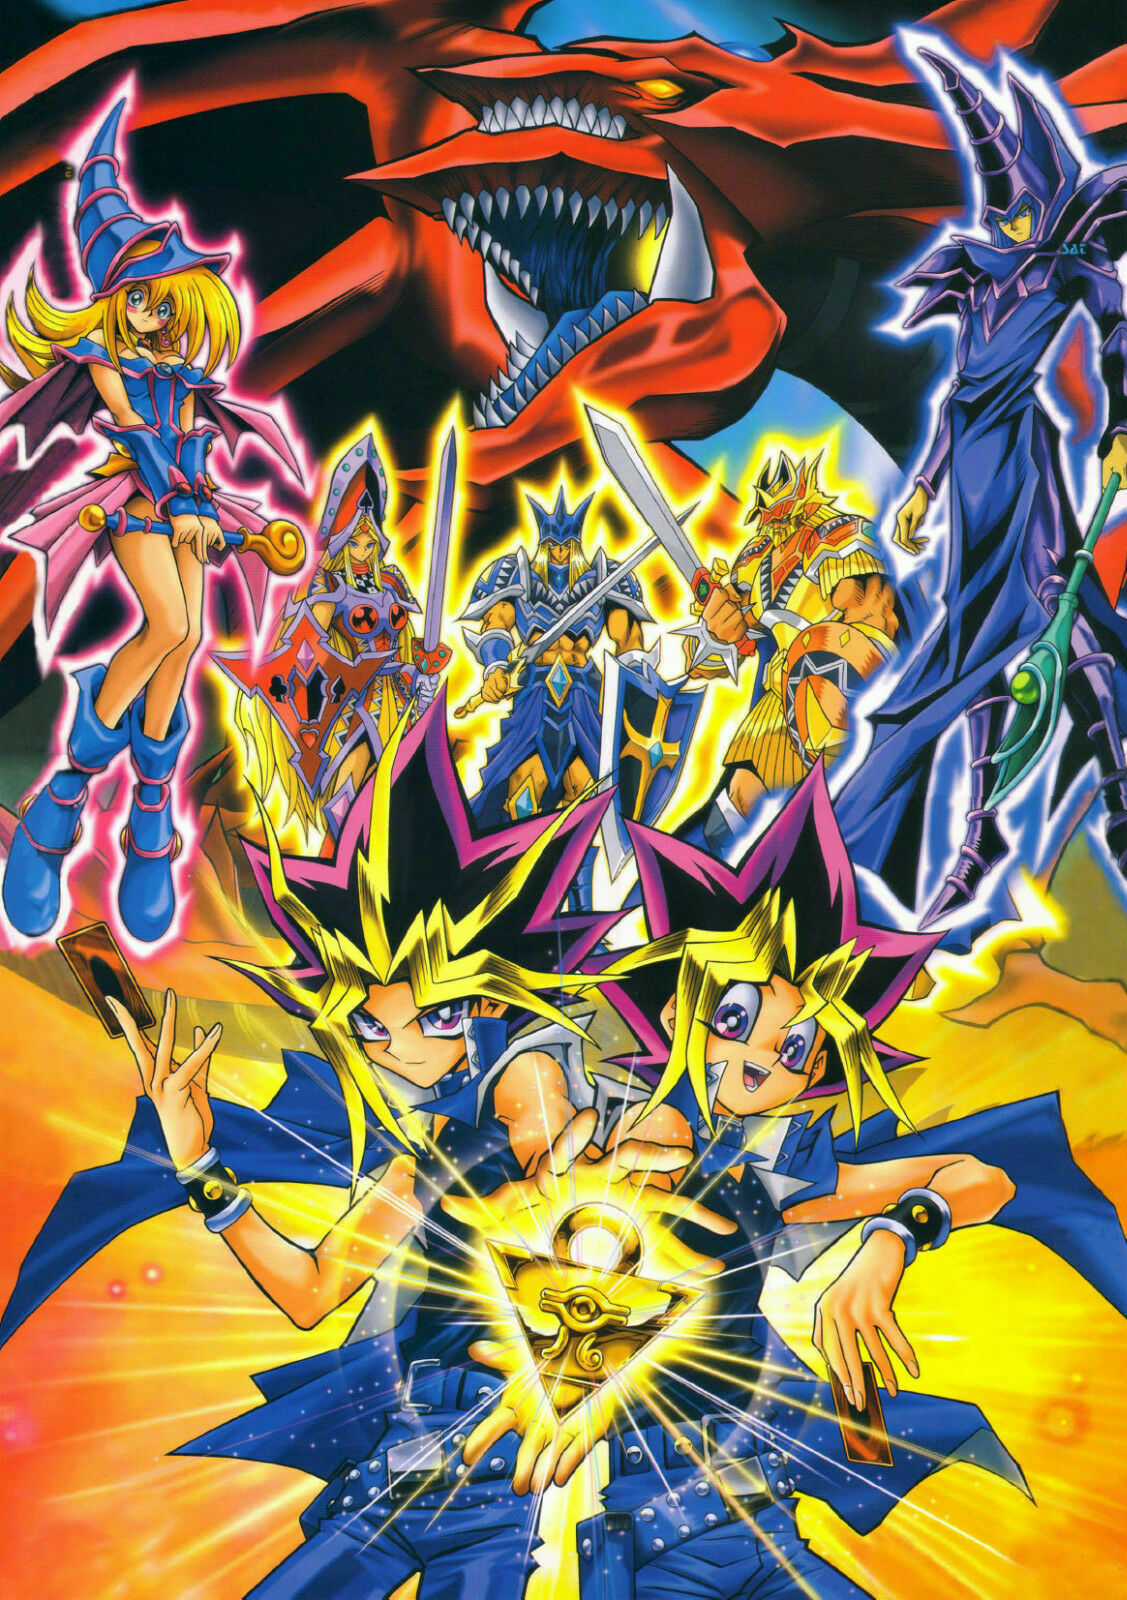 218821 Yugioh Anime Decor PRINT POSTER CA